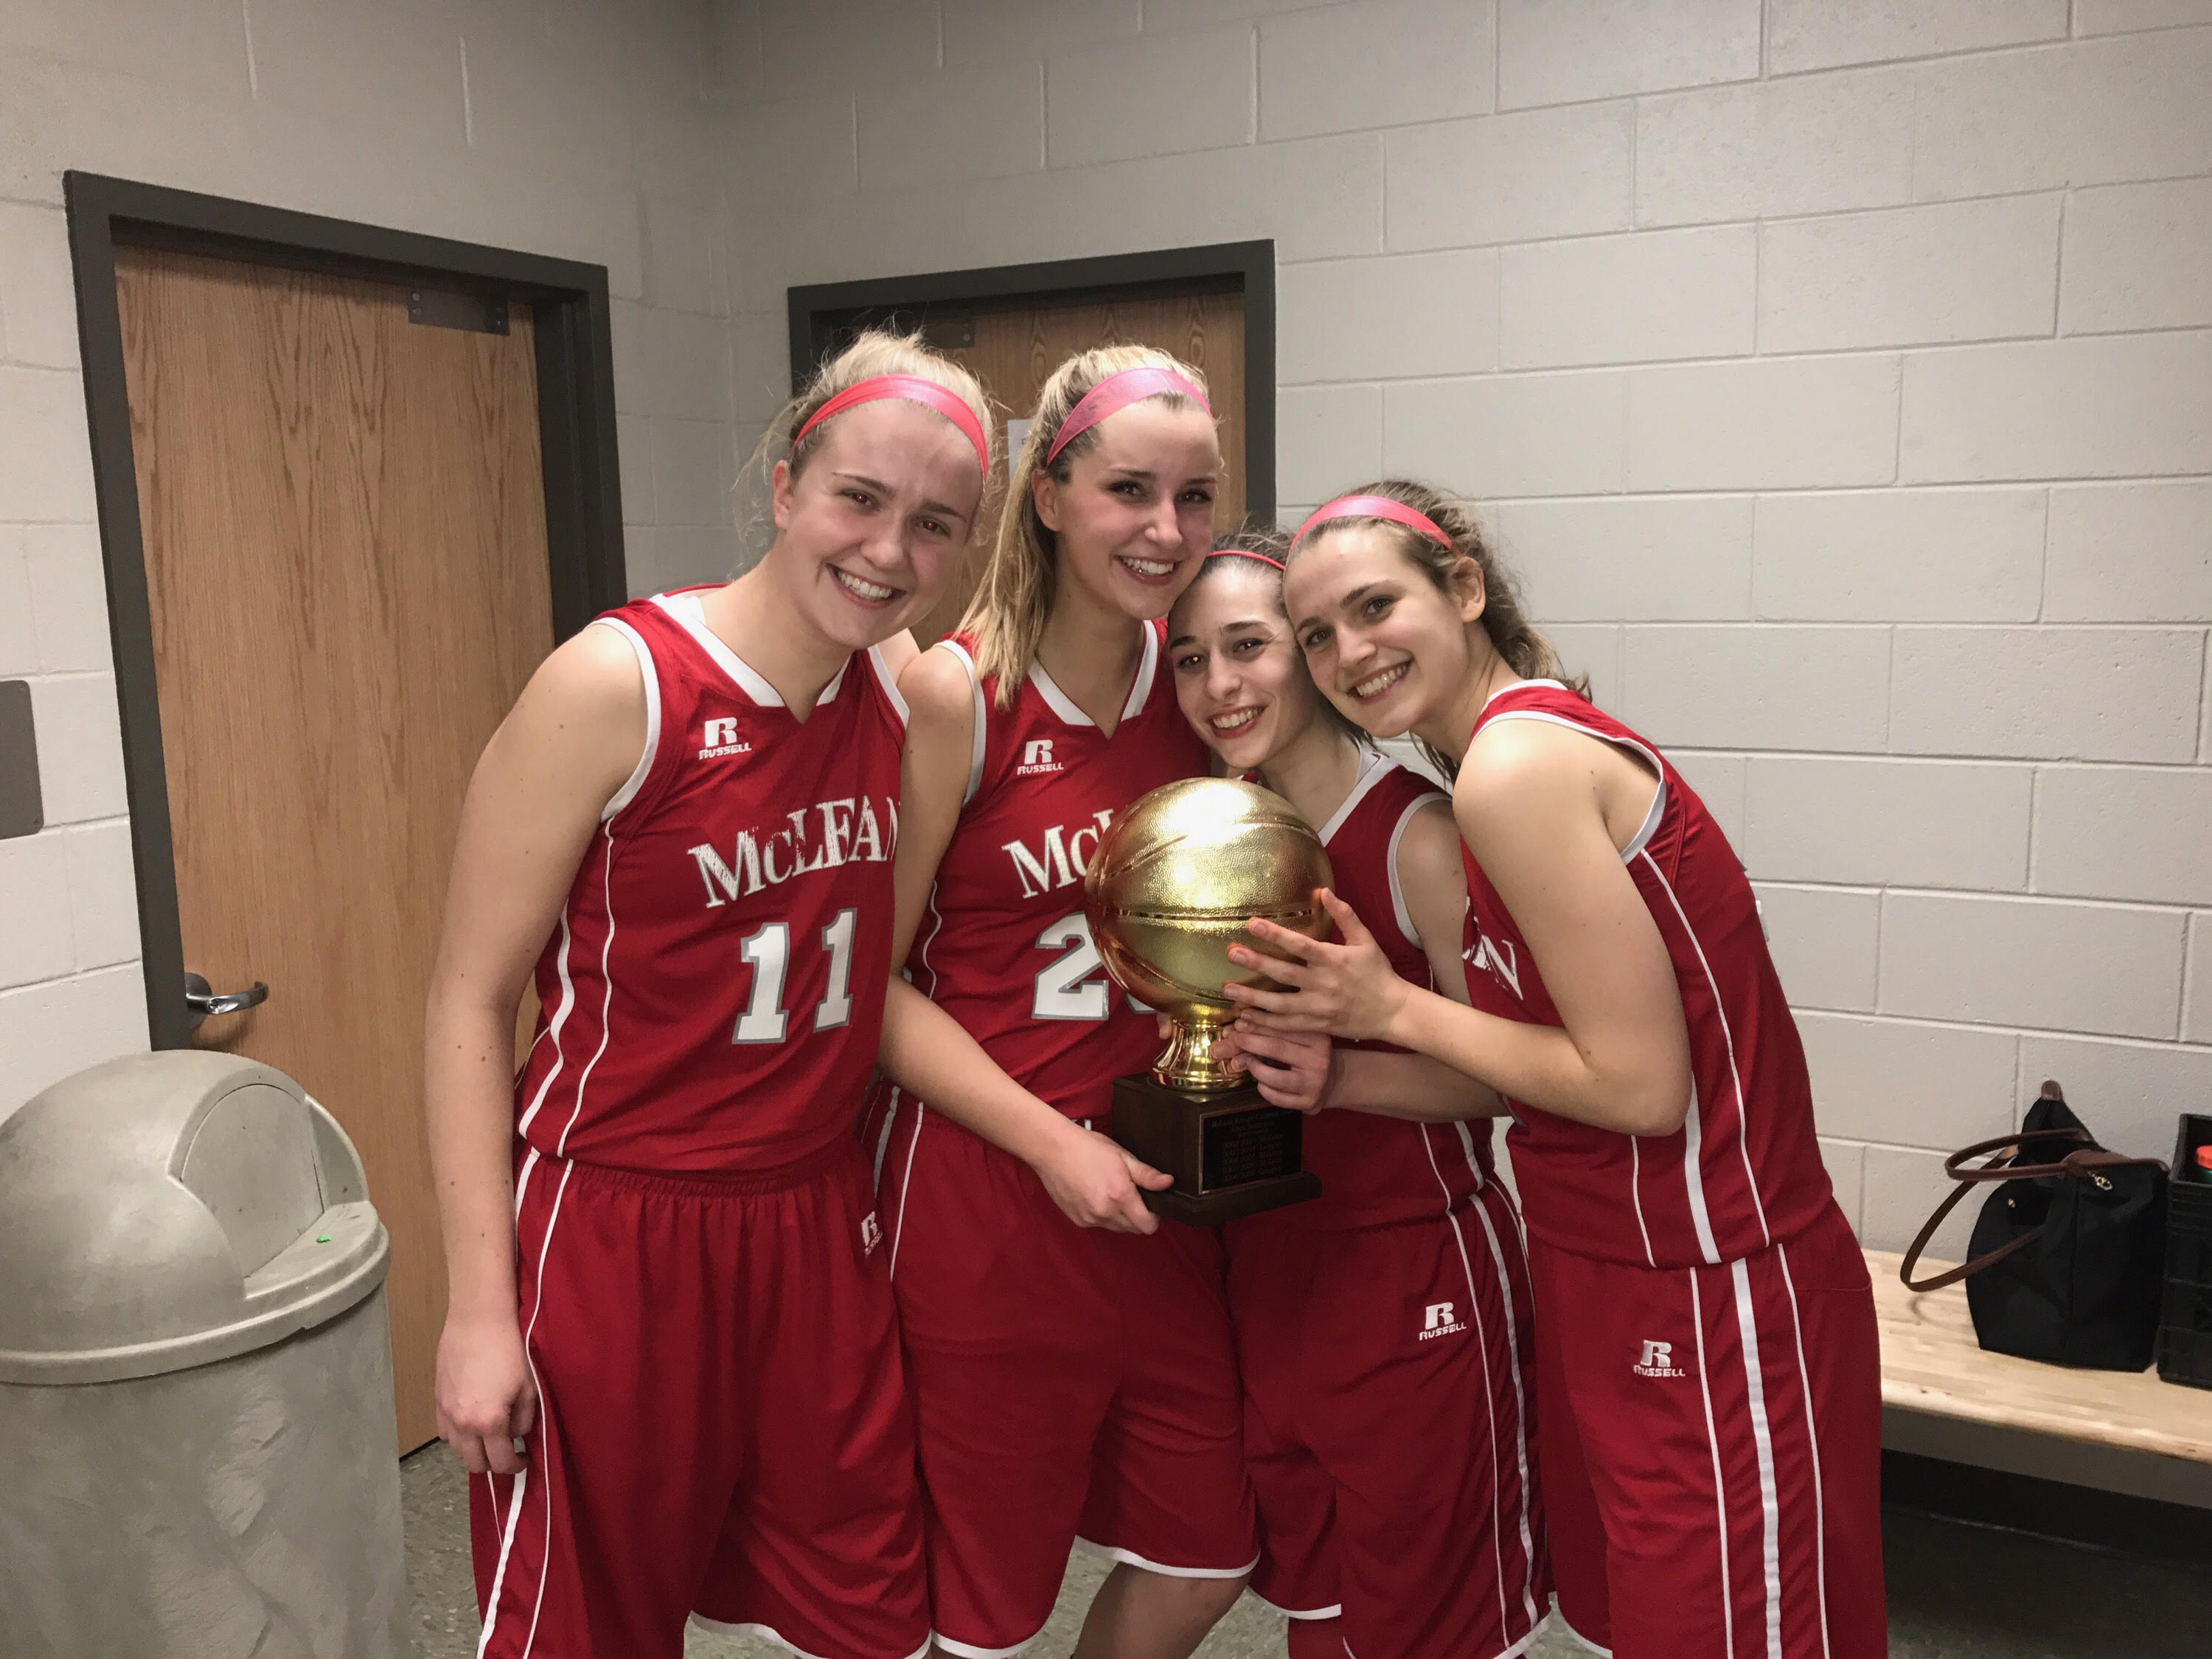 Senior captains Caroline Lewis, Hannah Smith, Vanessa Barlow, and Anna Murphy pose after victory against Langley. (Photo courtesy of Caroline Lewis)